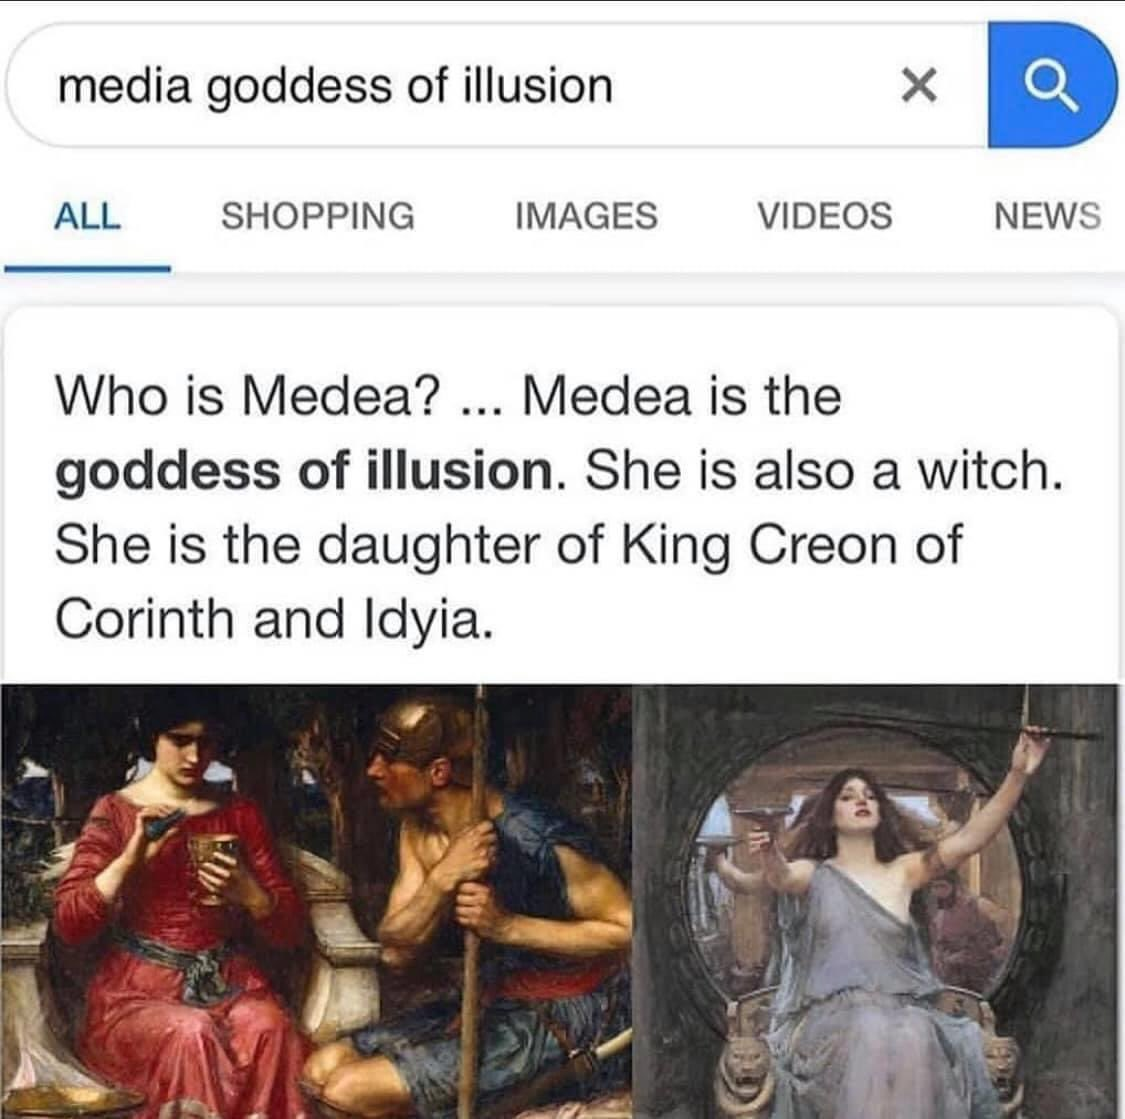 Turn off the Medea. You are possessed and under a spell. #Media pic.twitter.com/tkR9AeGkNj